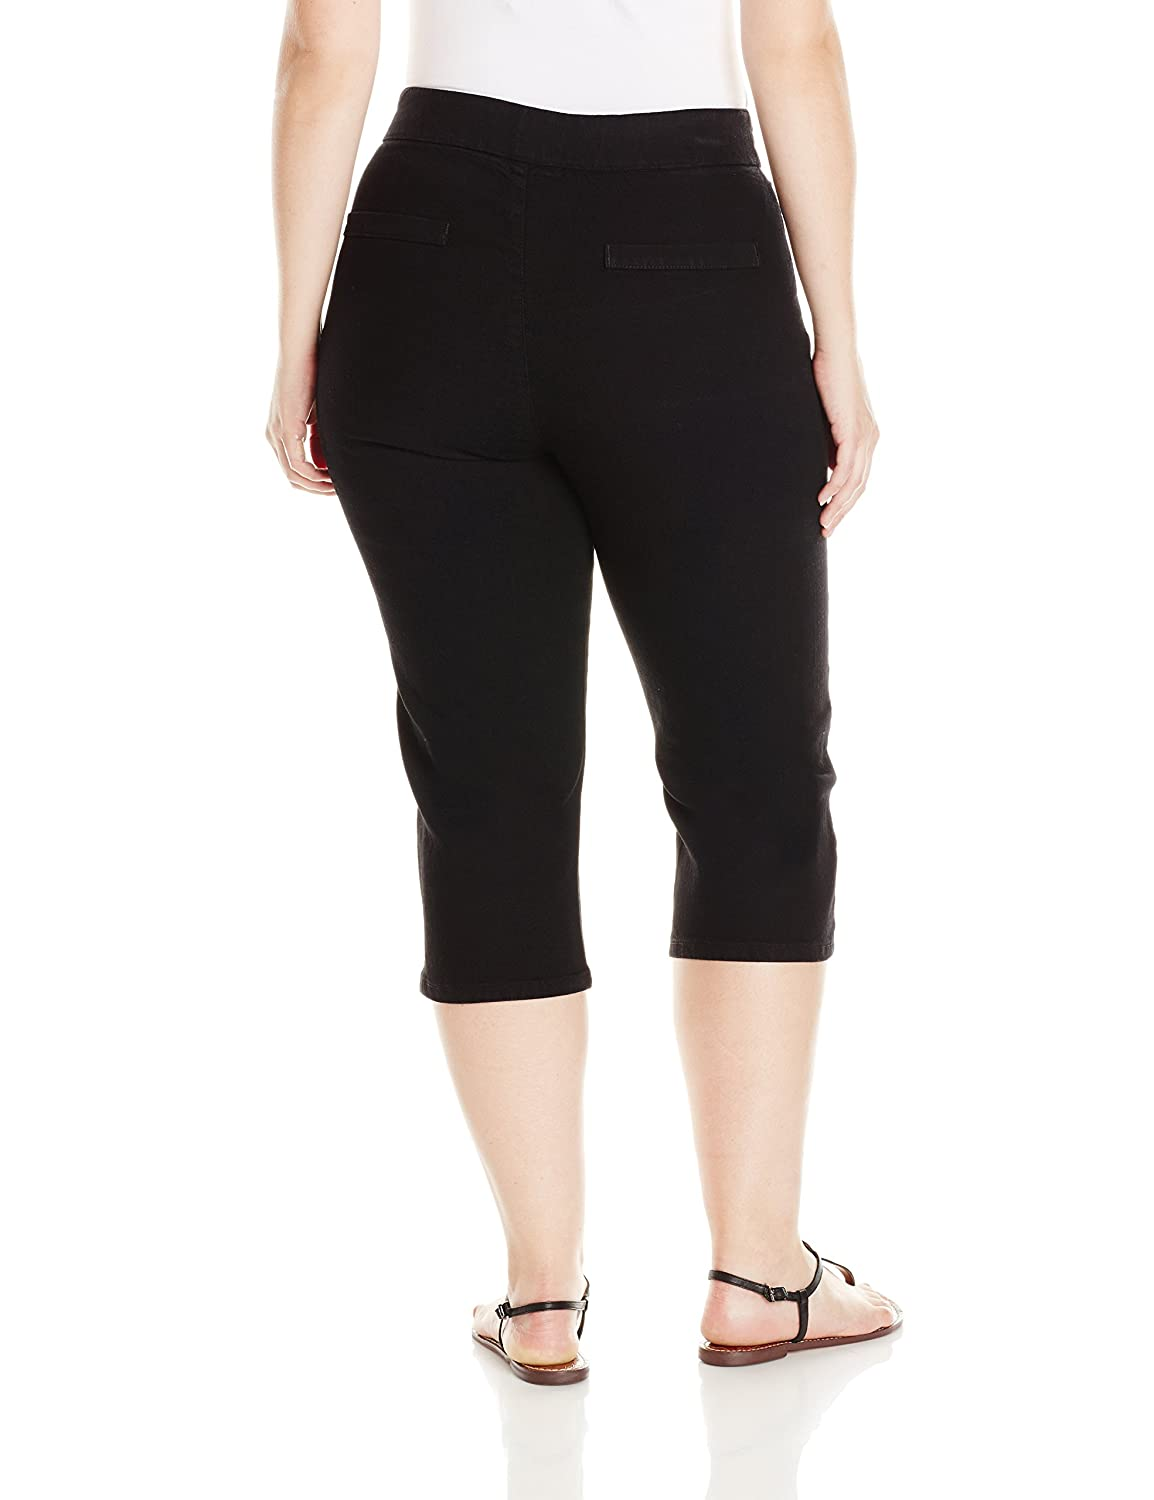 Chic Classic Collection Women's Plus-Size Easy Fit Elastic Waist Pull-On Capri ZFCP3X